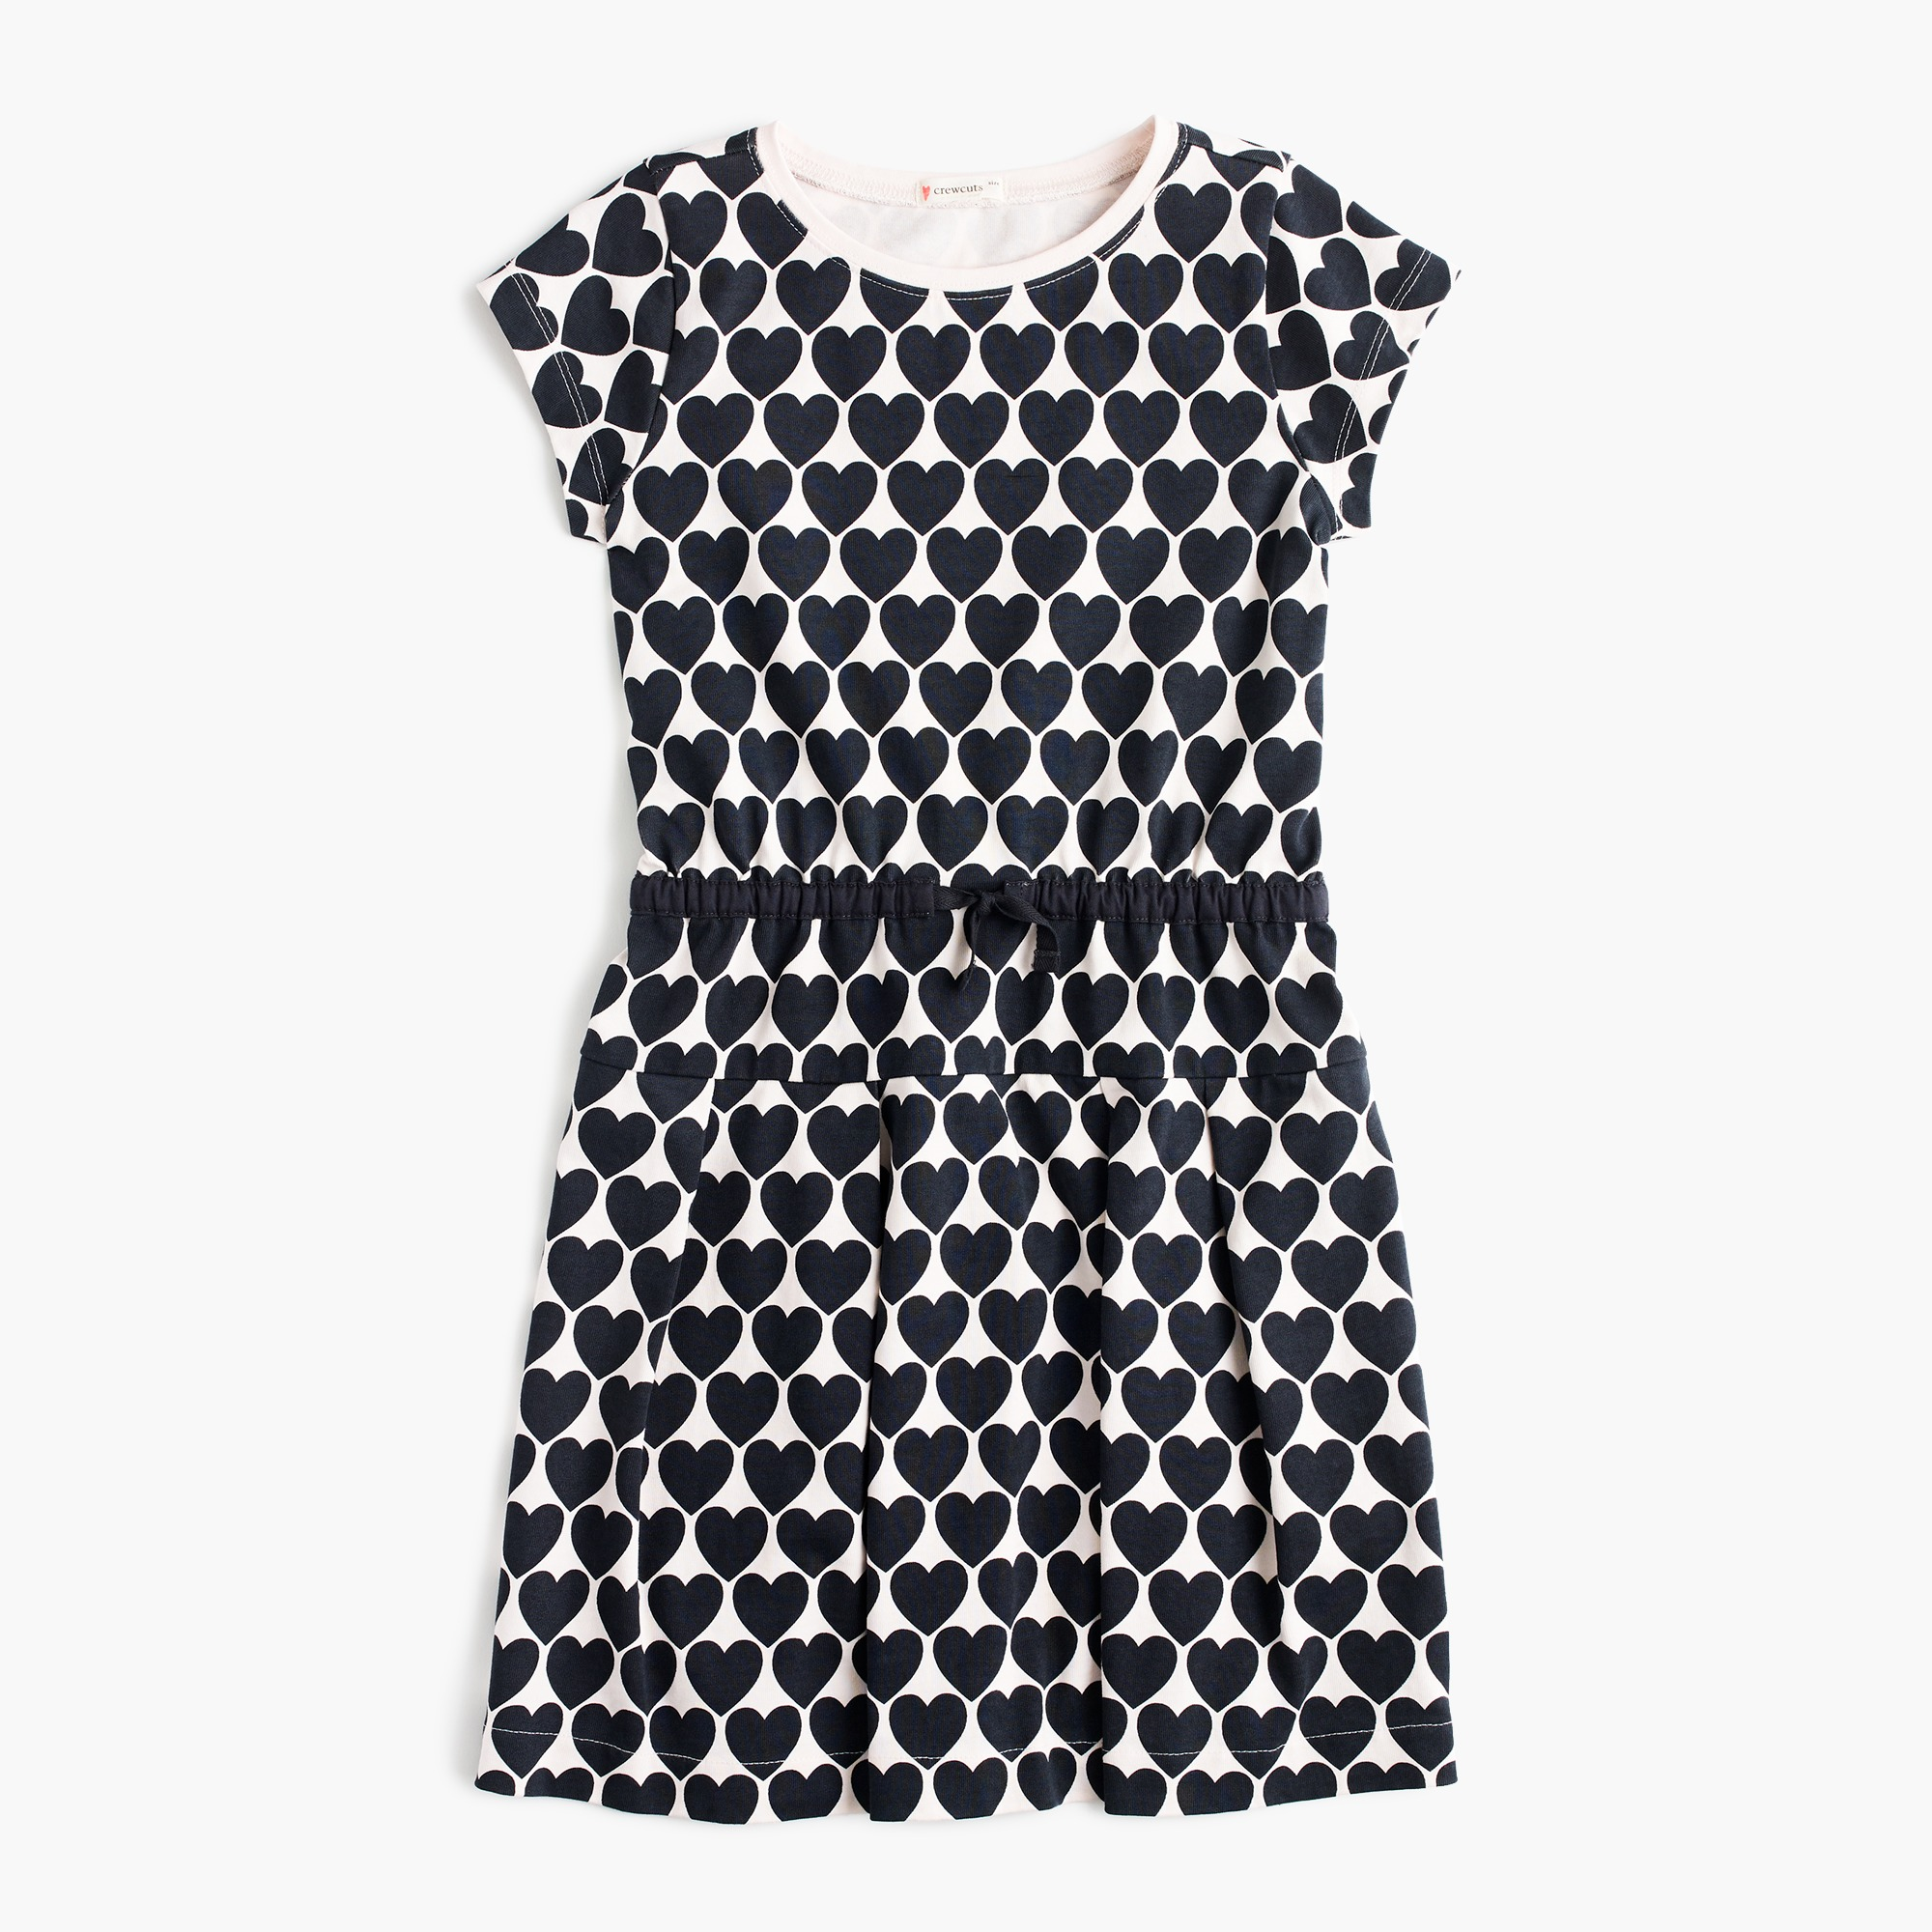 Girls' cap-sleeve dress in hearts